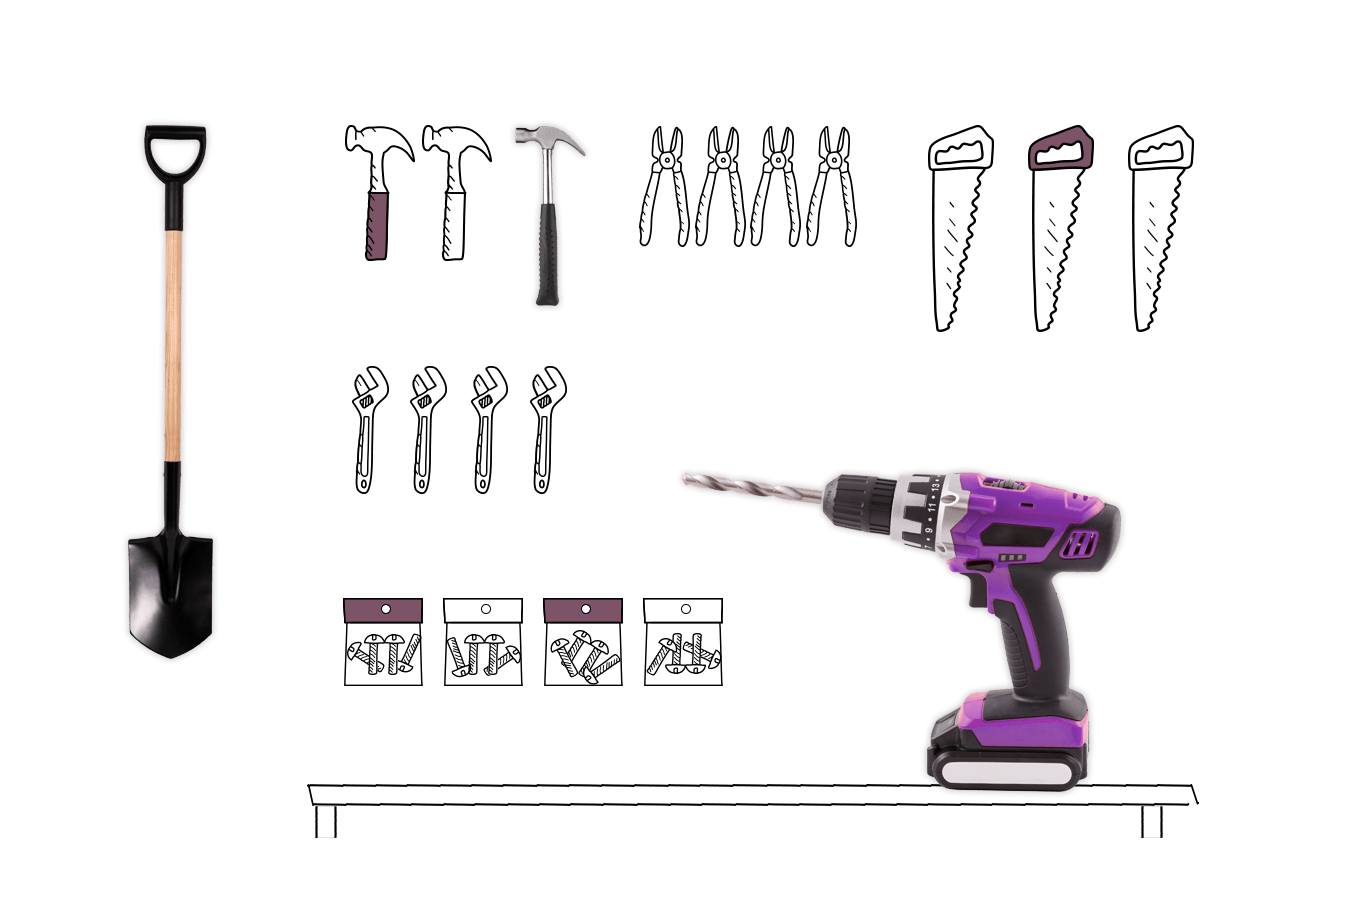 hardware and DIY shop insurance illustration of assorted tools on work bench